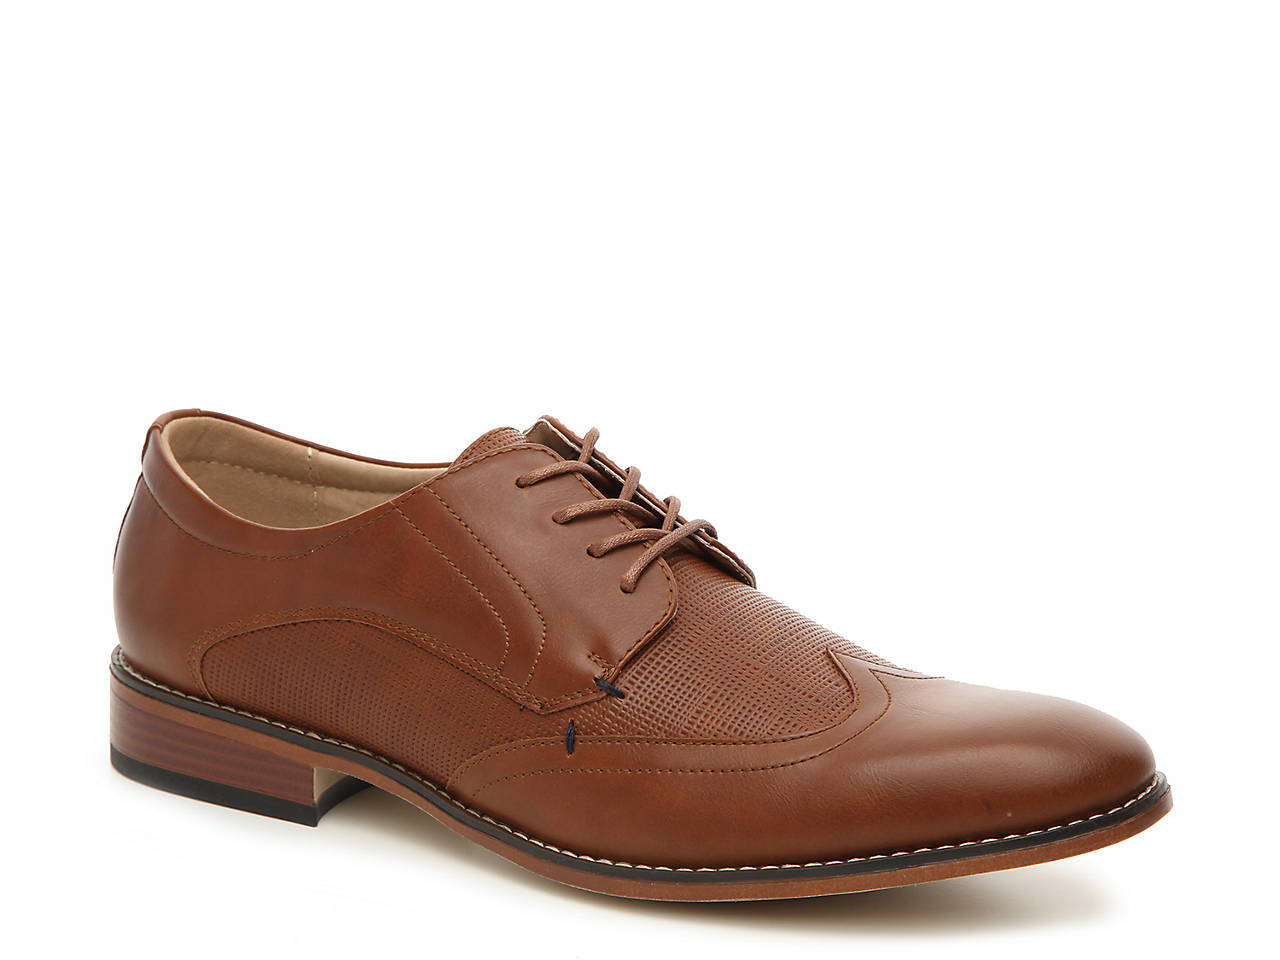 Holston Wingtip Oxford